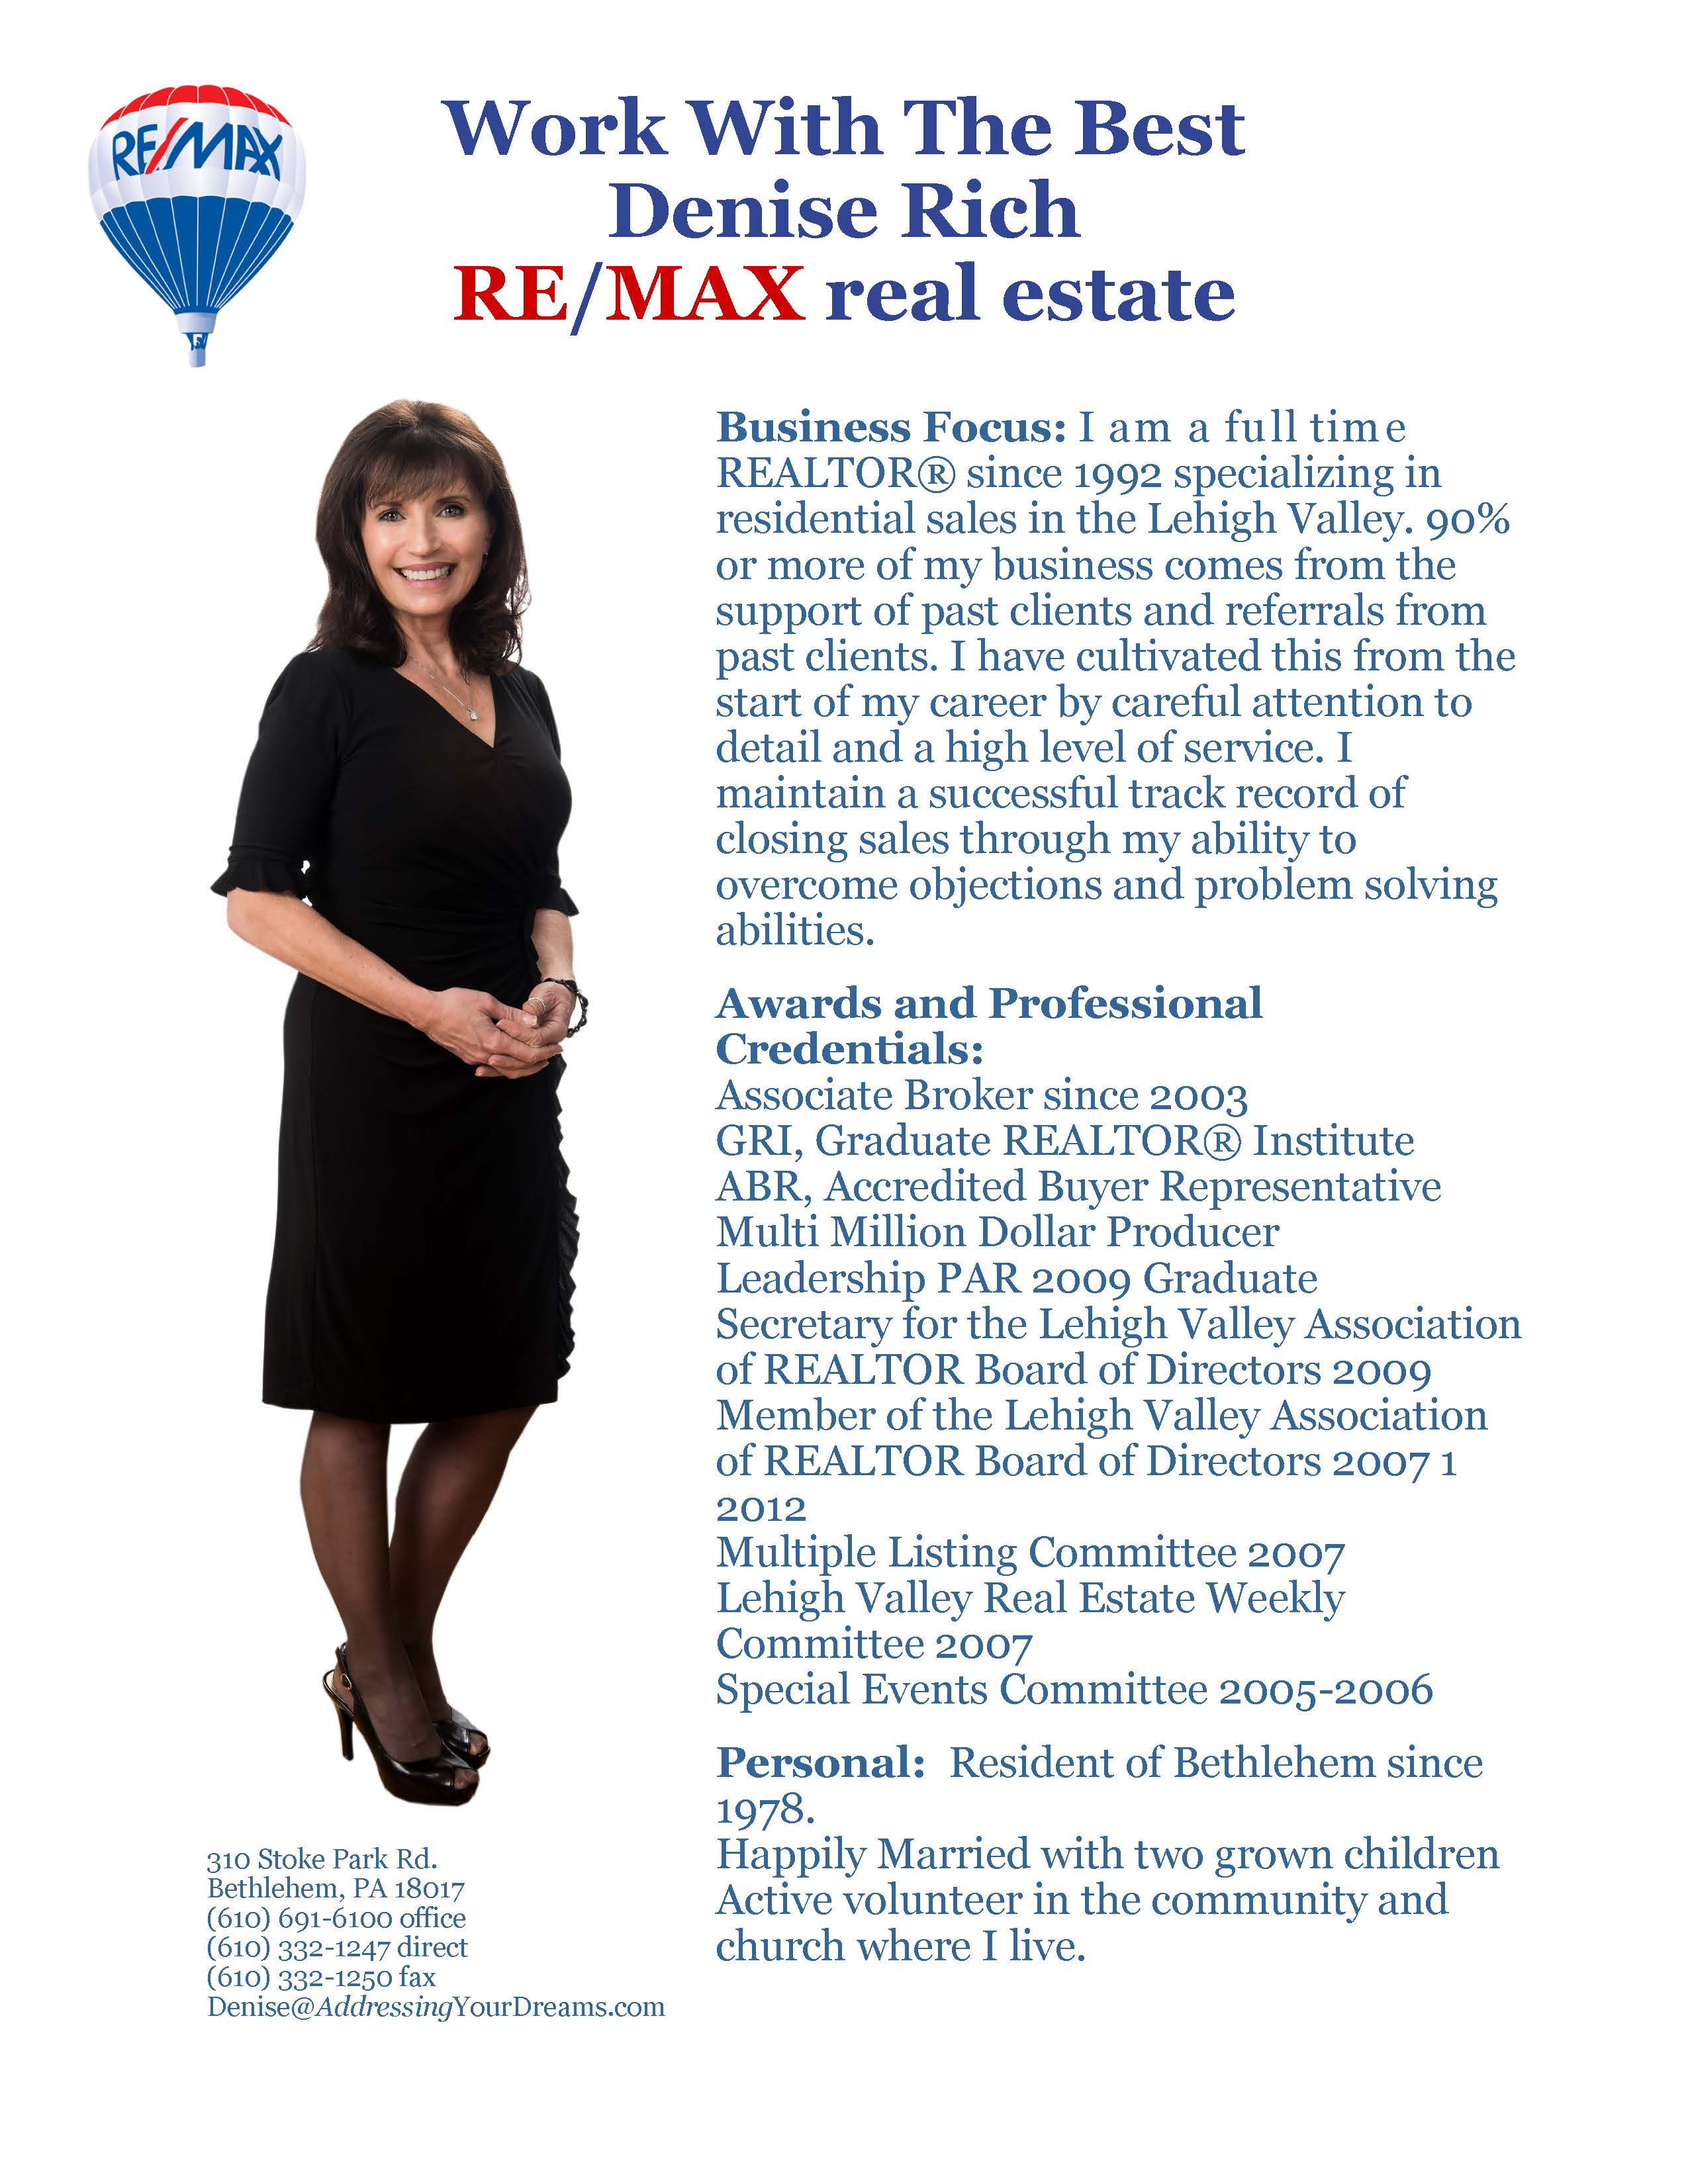 Real estate agent bio template for Templating agent